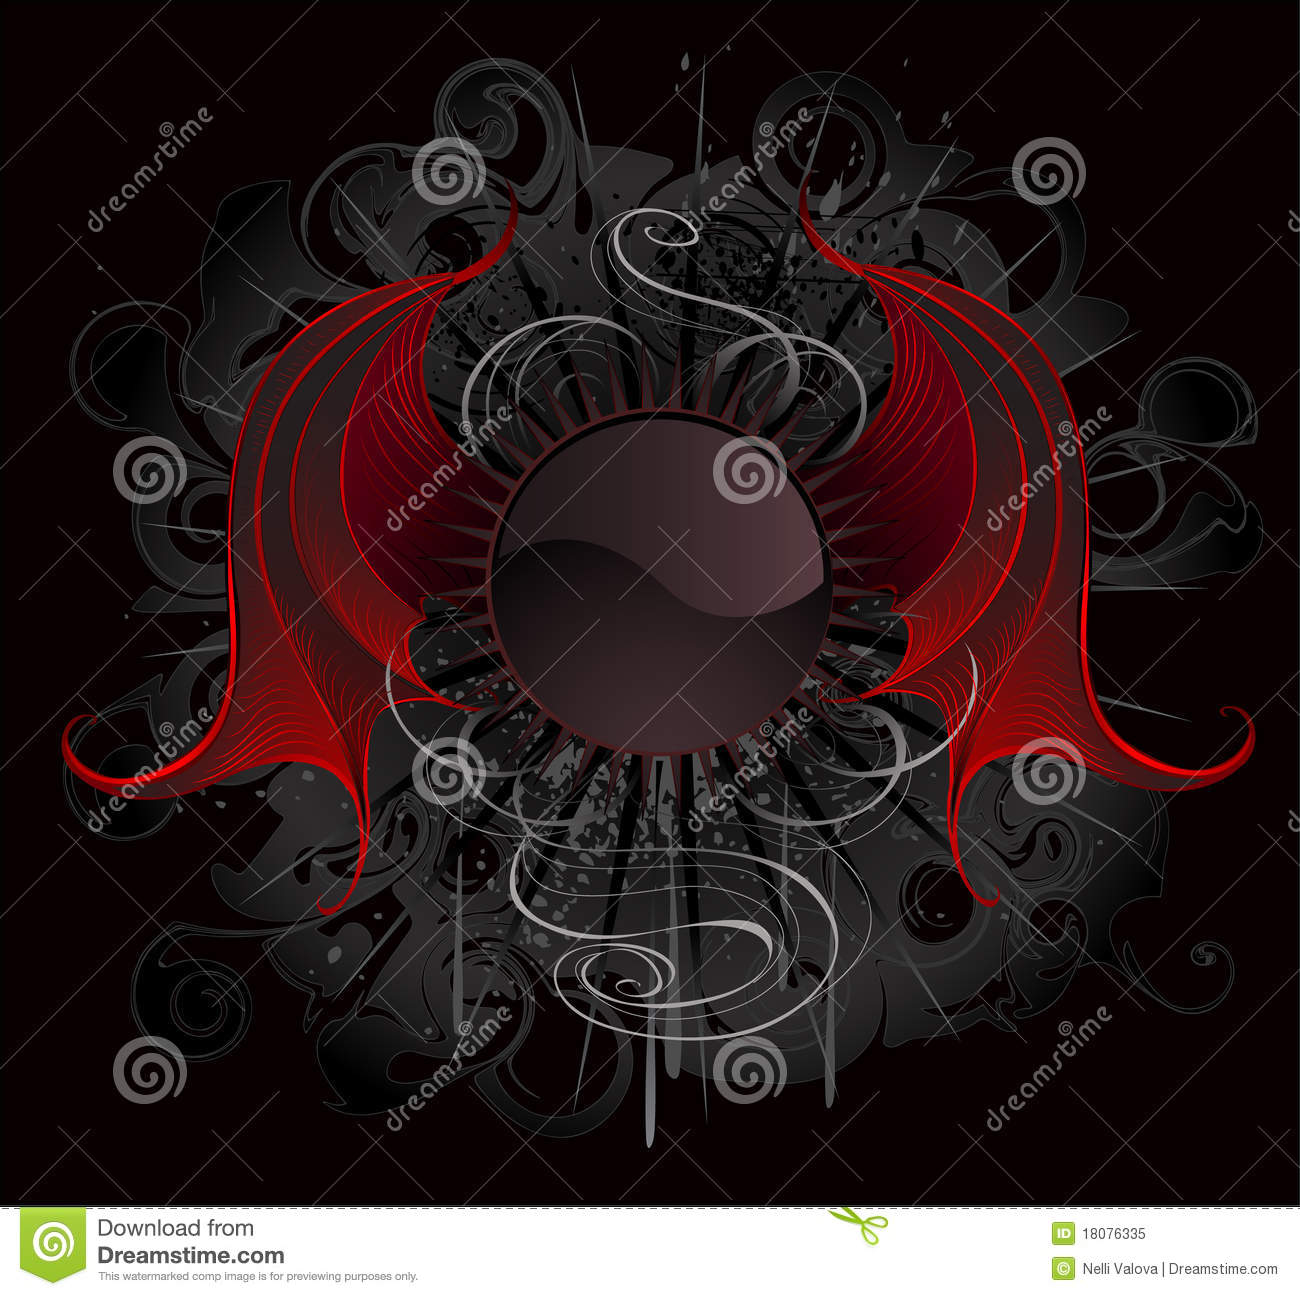 Black Rose Wallpaper 3d Gothic Round Banner With The Red Wings Dragon Royalty Free